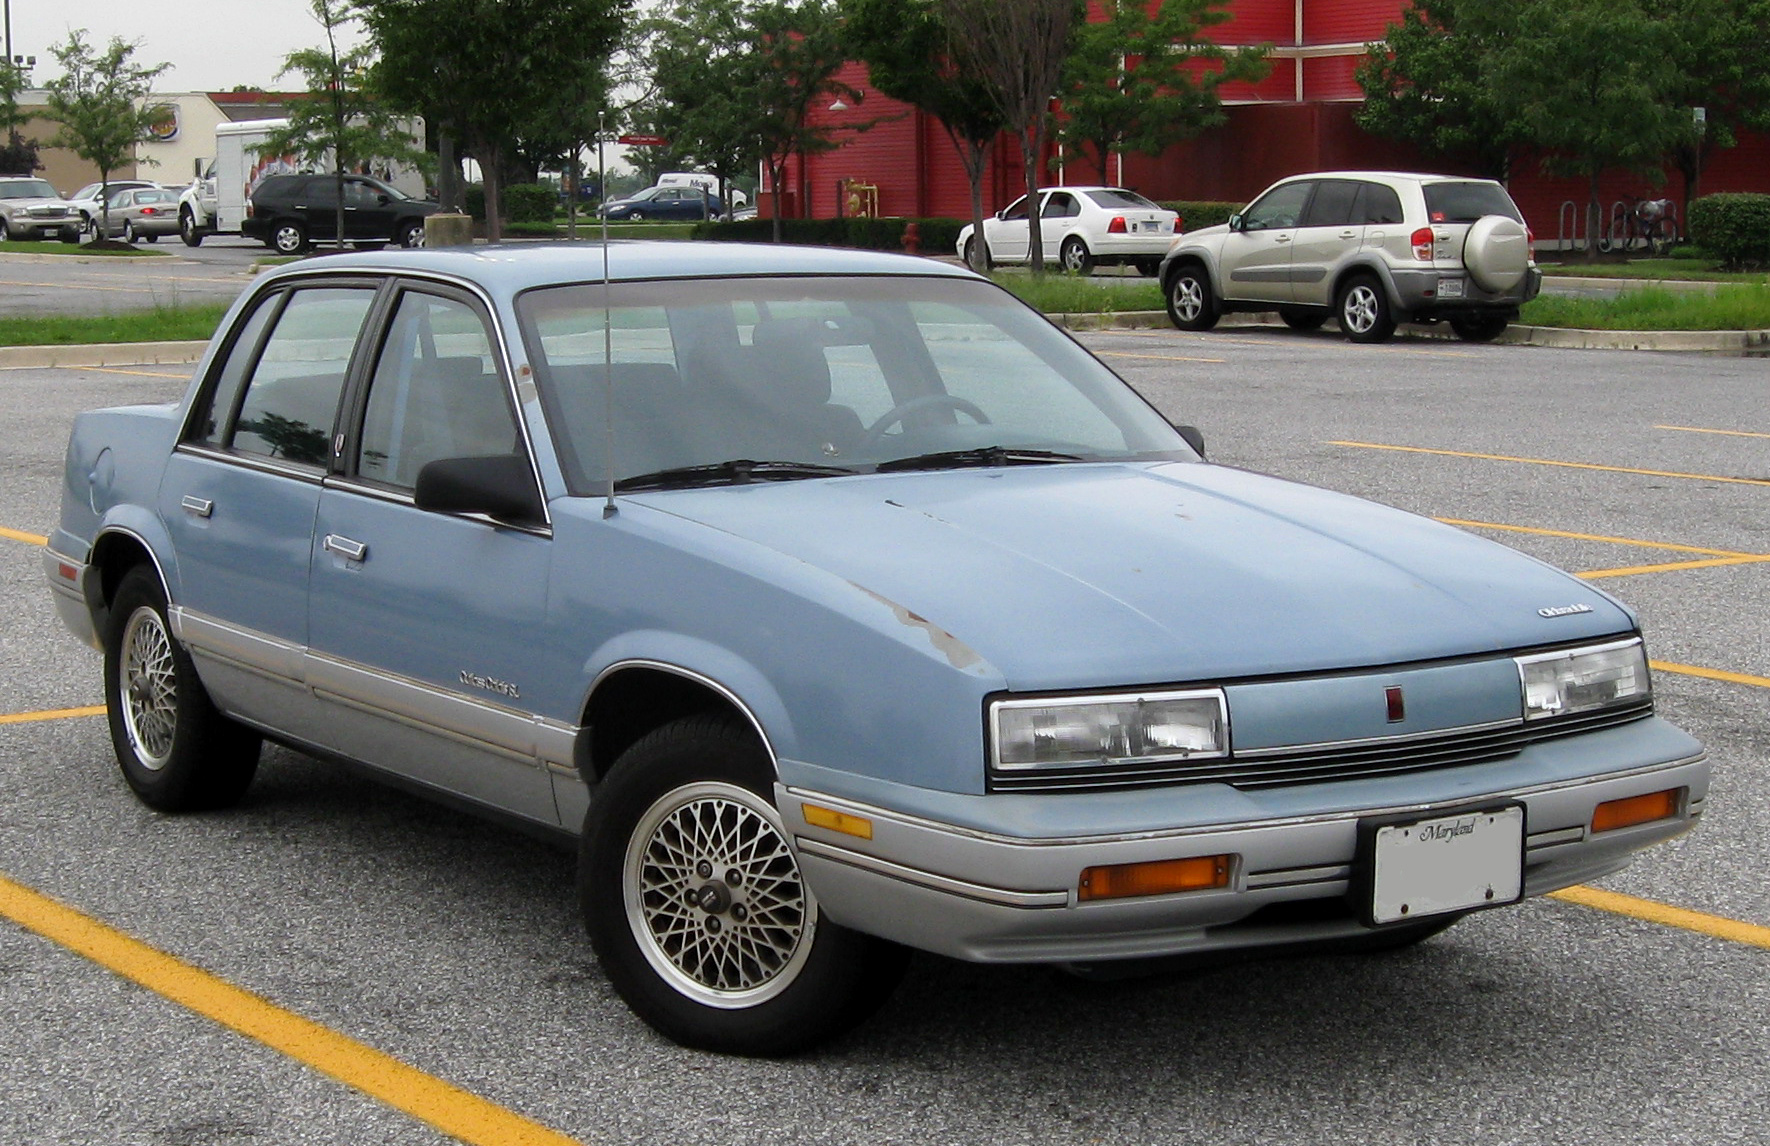 Oldsmobile Cutlass Calais #1